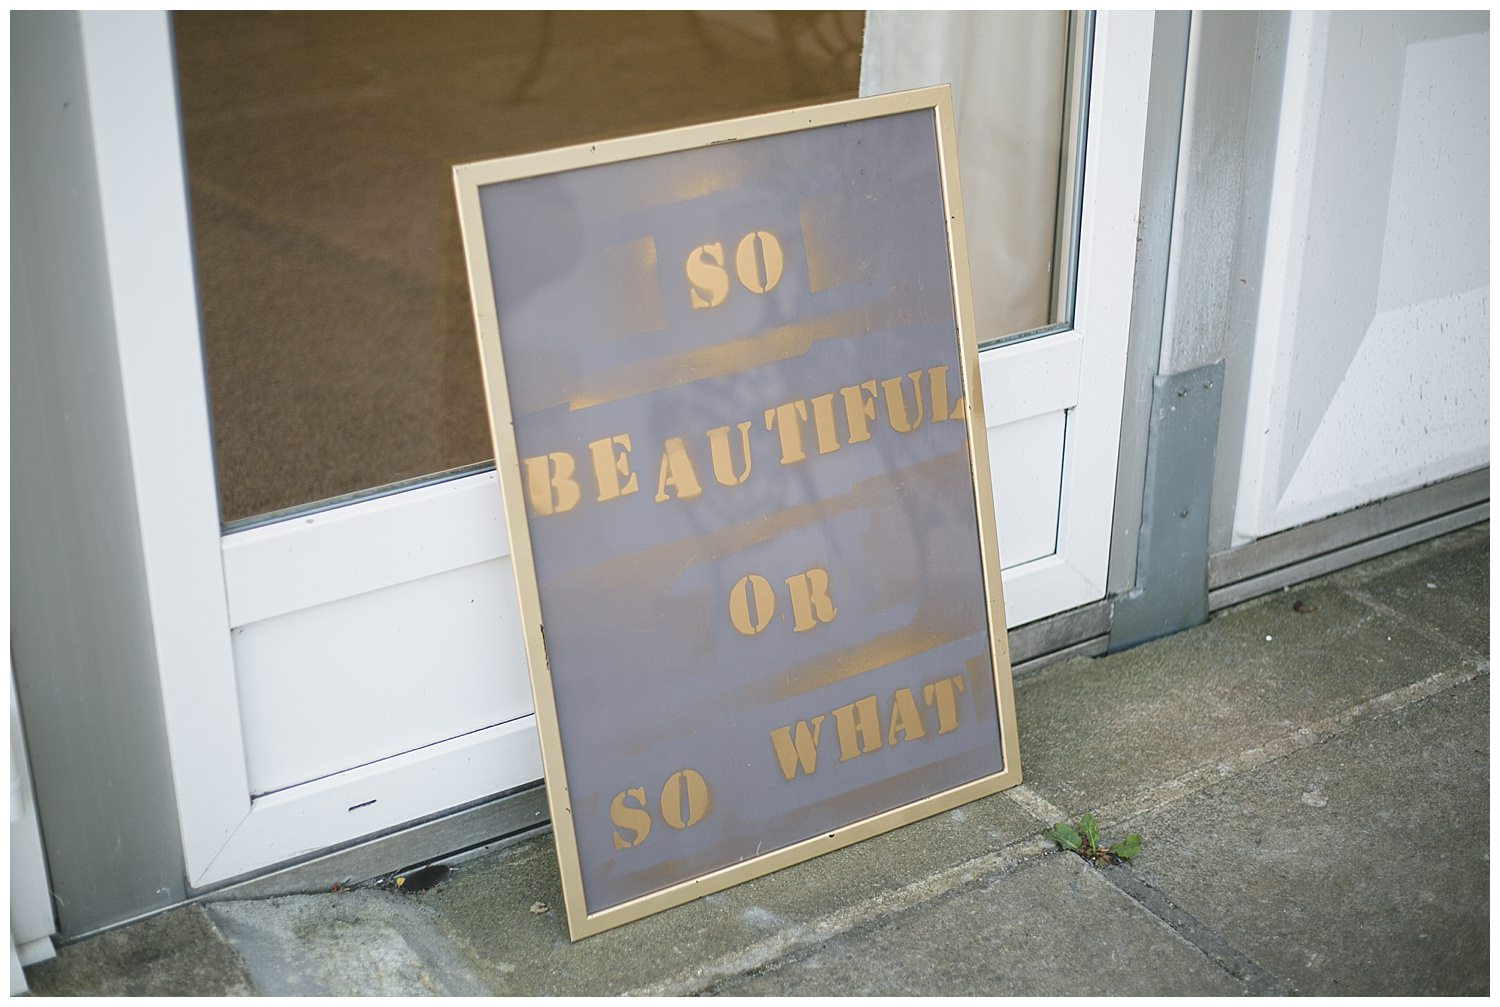 Gold spray painted sign - so beautiful or so what